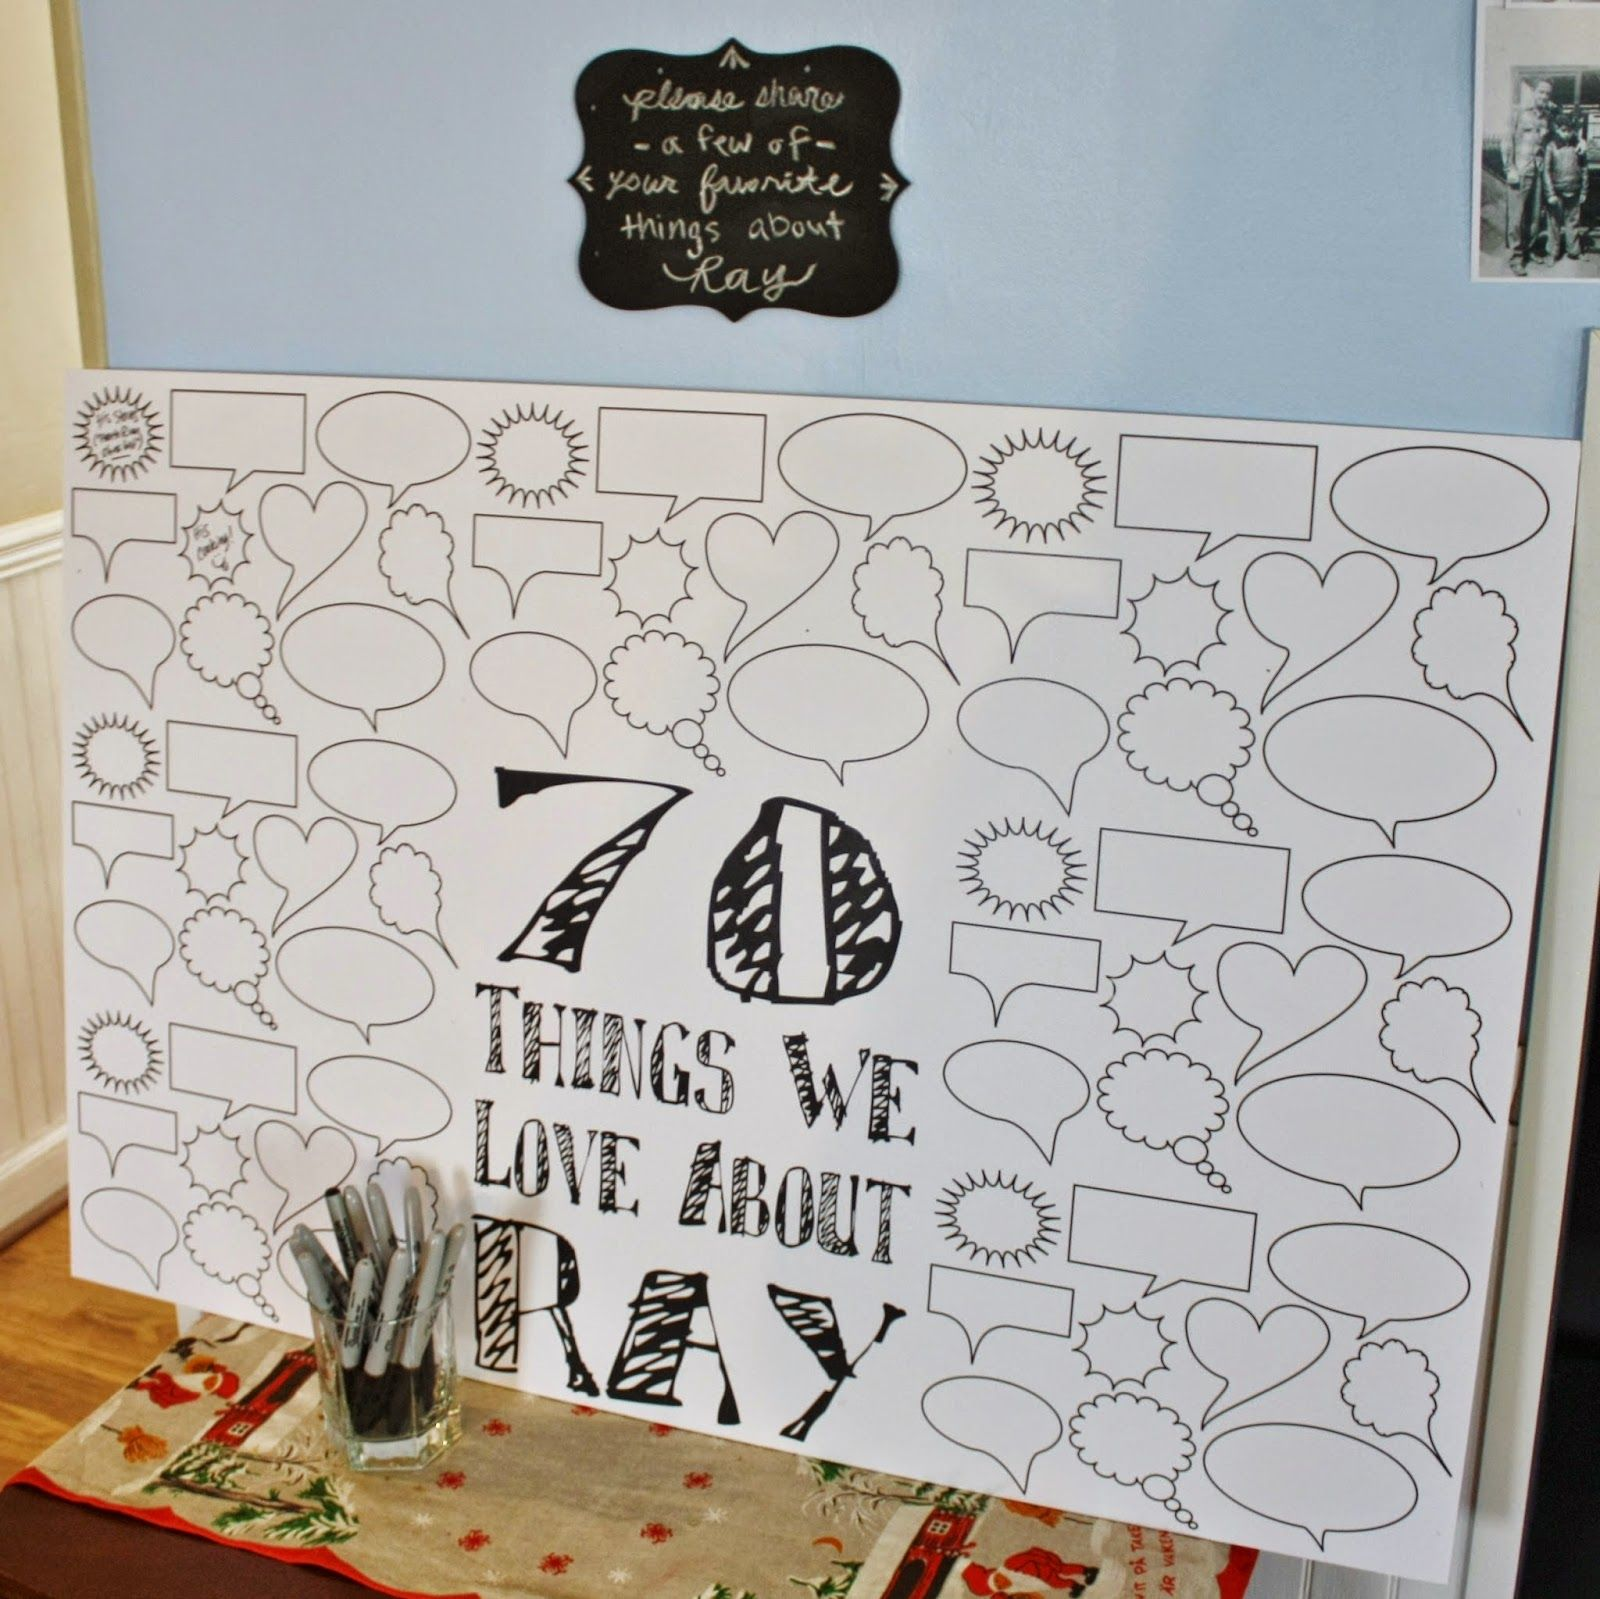 70 Things We Love About Ray Party Decoration And Interactive Guest Activity From Dads Milestone 70th Birthday Decor Black White Gray Chevron